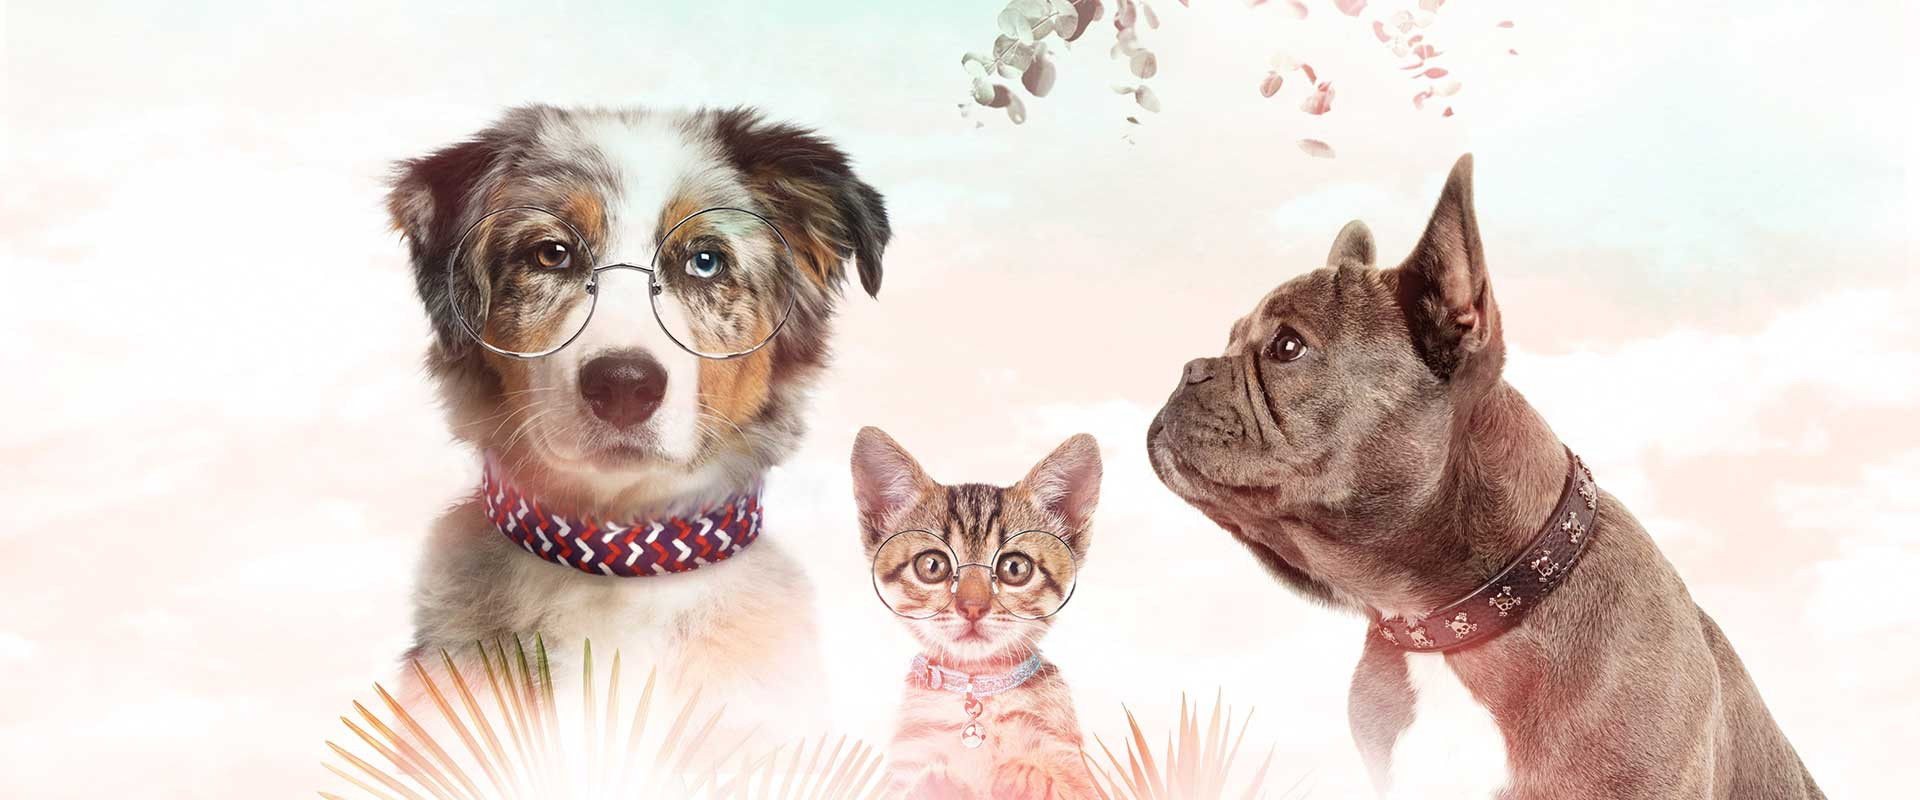 Milk & Pepper, Fashion And Accessories For Dogs & Cats -  Accessories Summer 2020